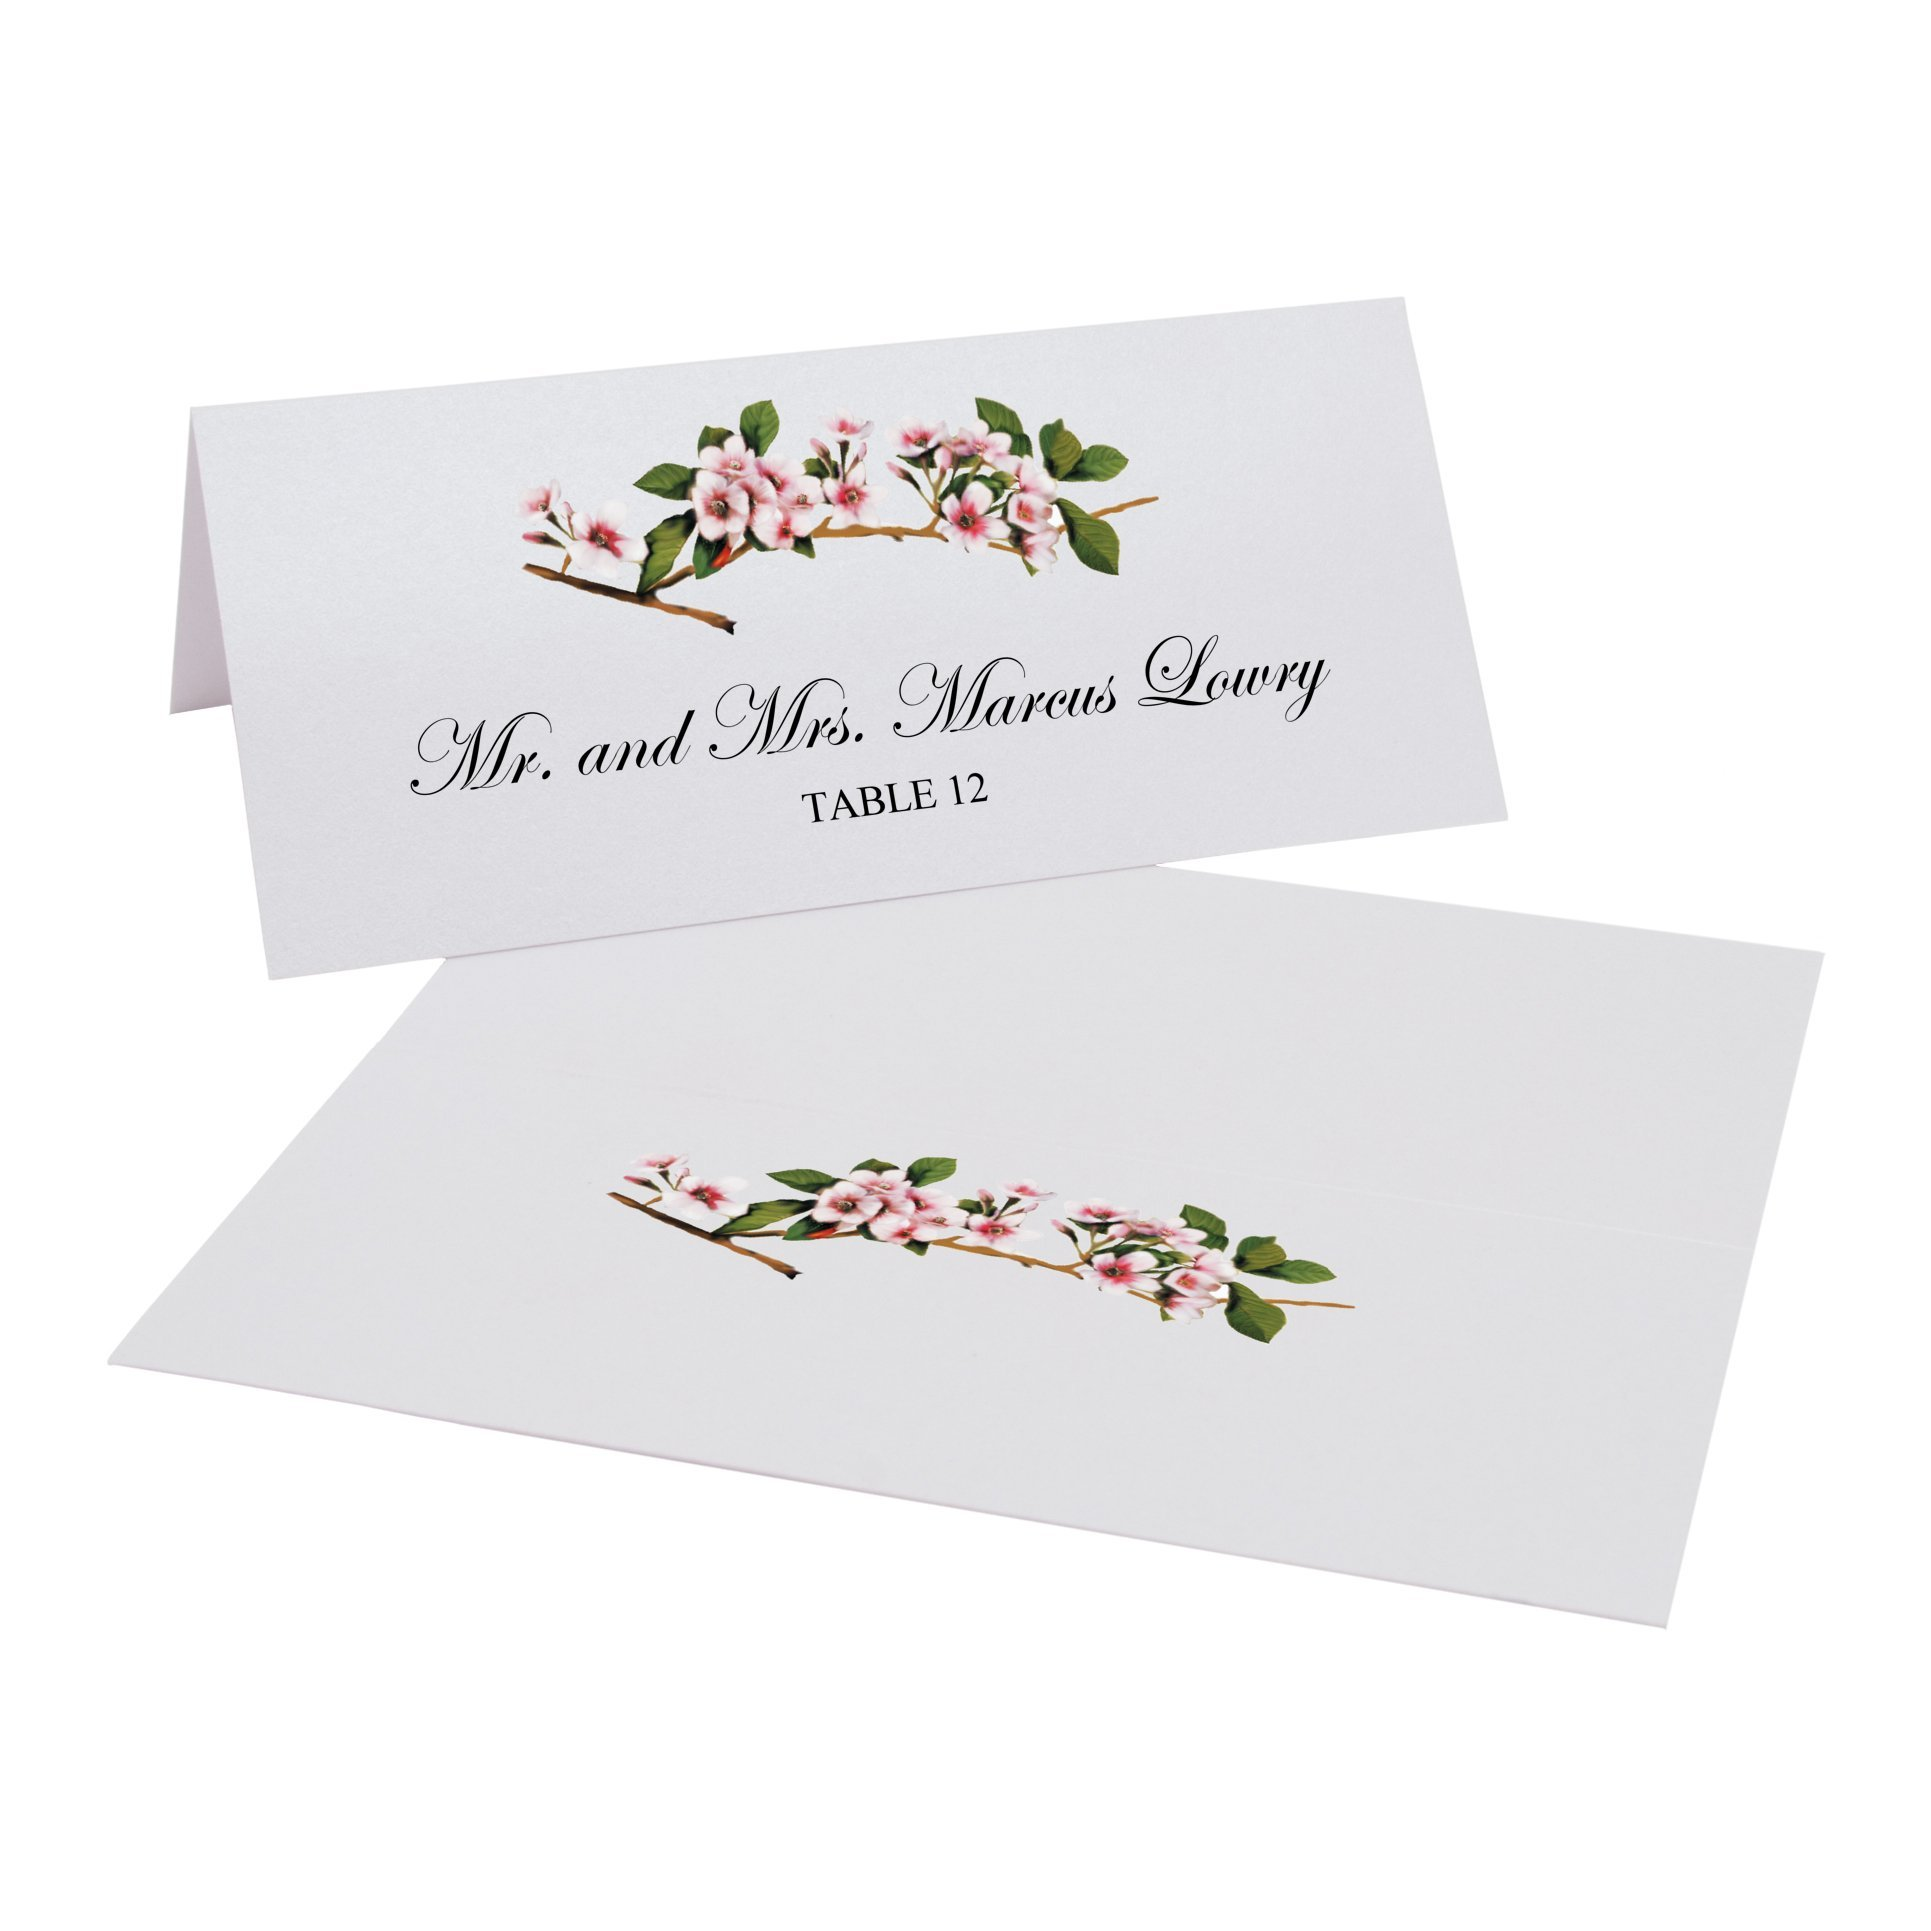 Pink Cherry Blossoms Easy Print Place Cards, Pearl White, Set of 300 (75 Sheets) by Documents and Designs